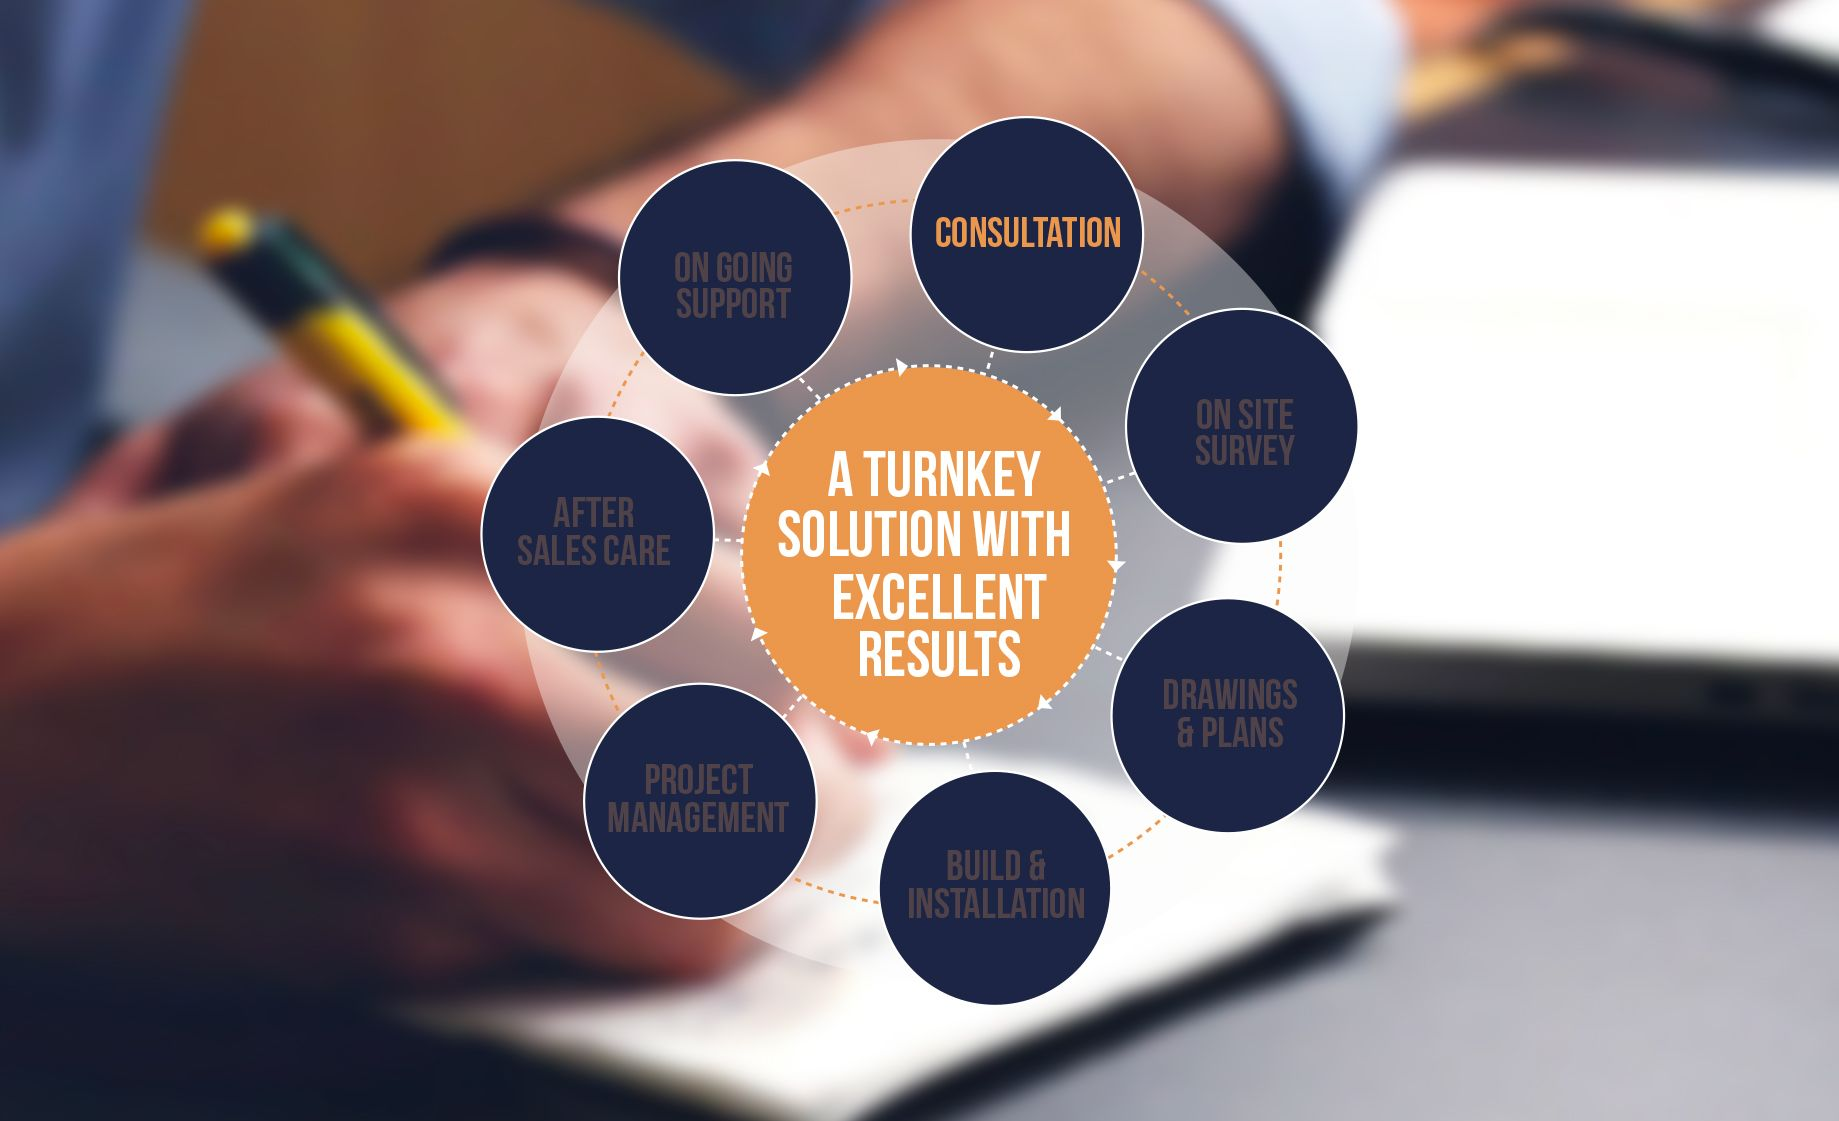 <p><strong>Consultation:</strong><br /> Meet with our experts to discuss the goals and ambitions of your build and take advantage of their knowledge and experience.</p>